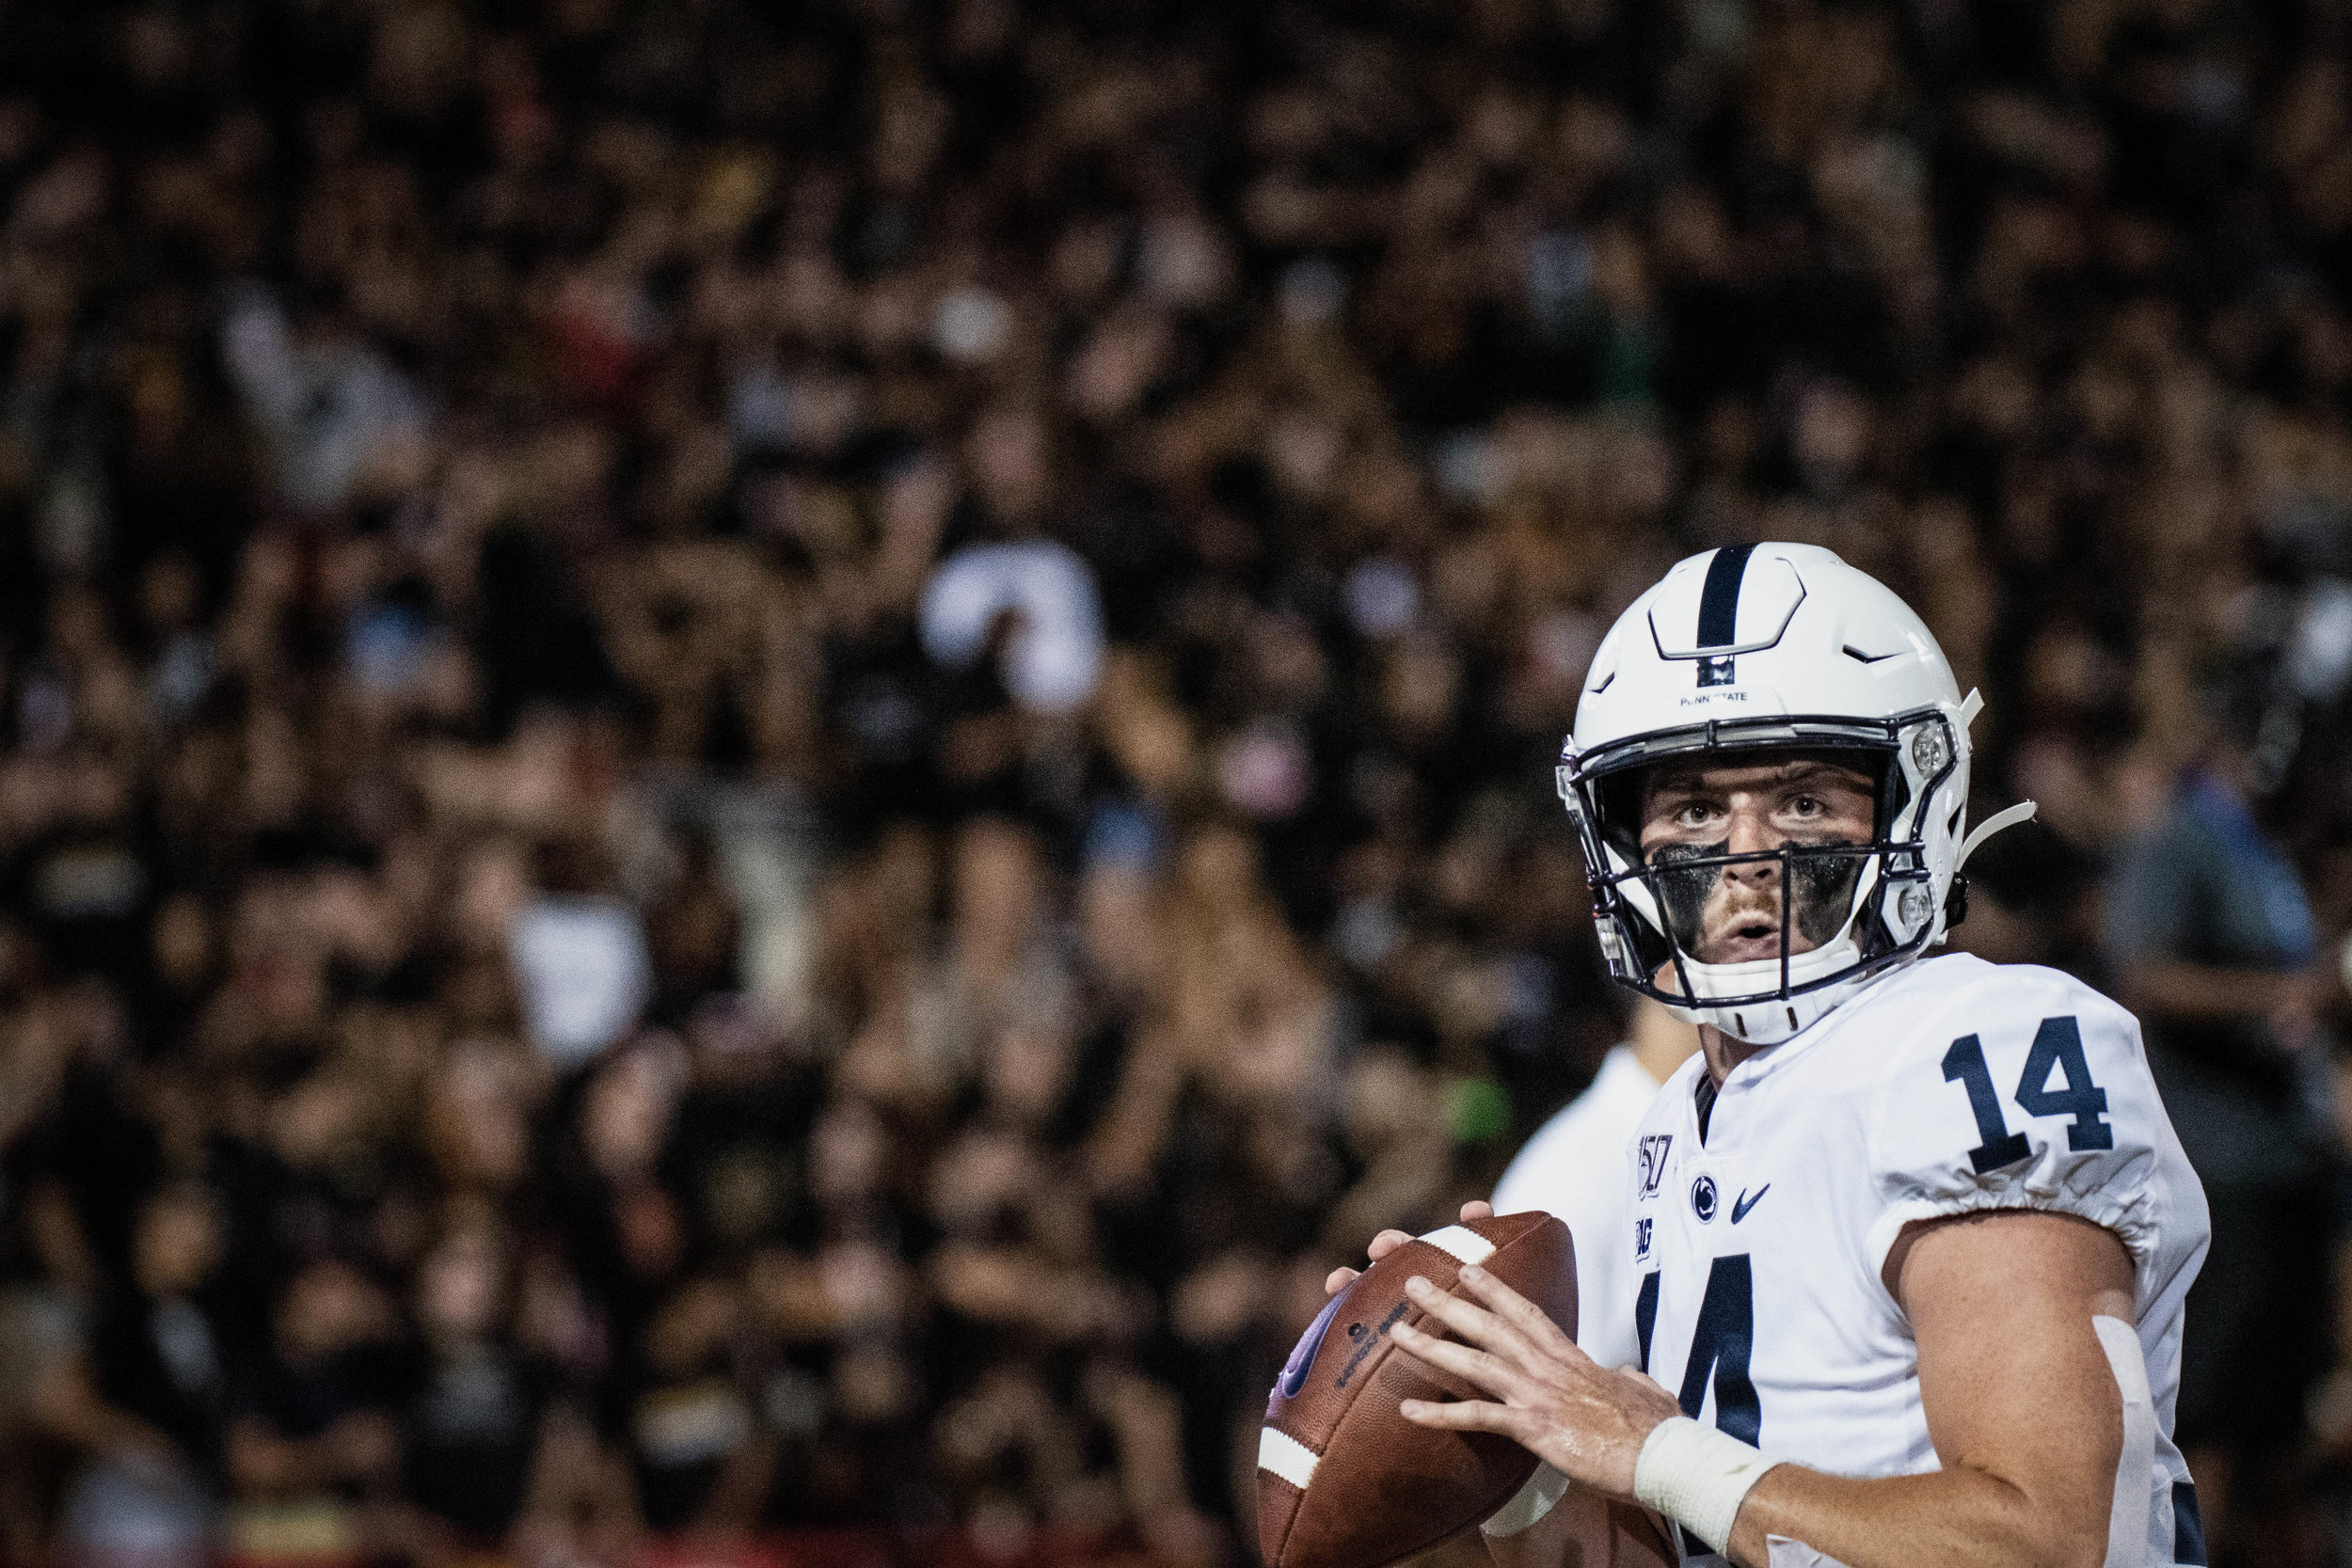 Penn State Nittany Lions quarterback Sean Clifford (14) warms up before the game against Maryland on Friday, Sept. 27, 2019 at Capital One Field in College Park, Md. The Nittany Lion's defeated the Terrapins 59-0.